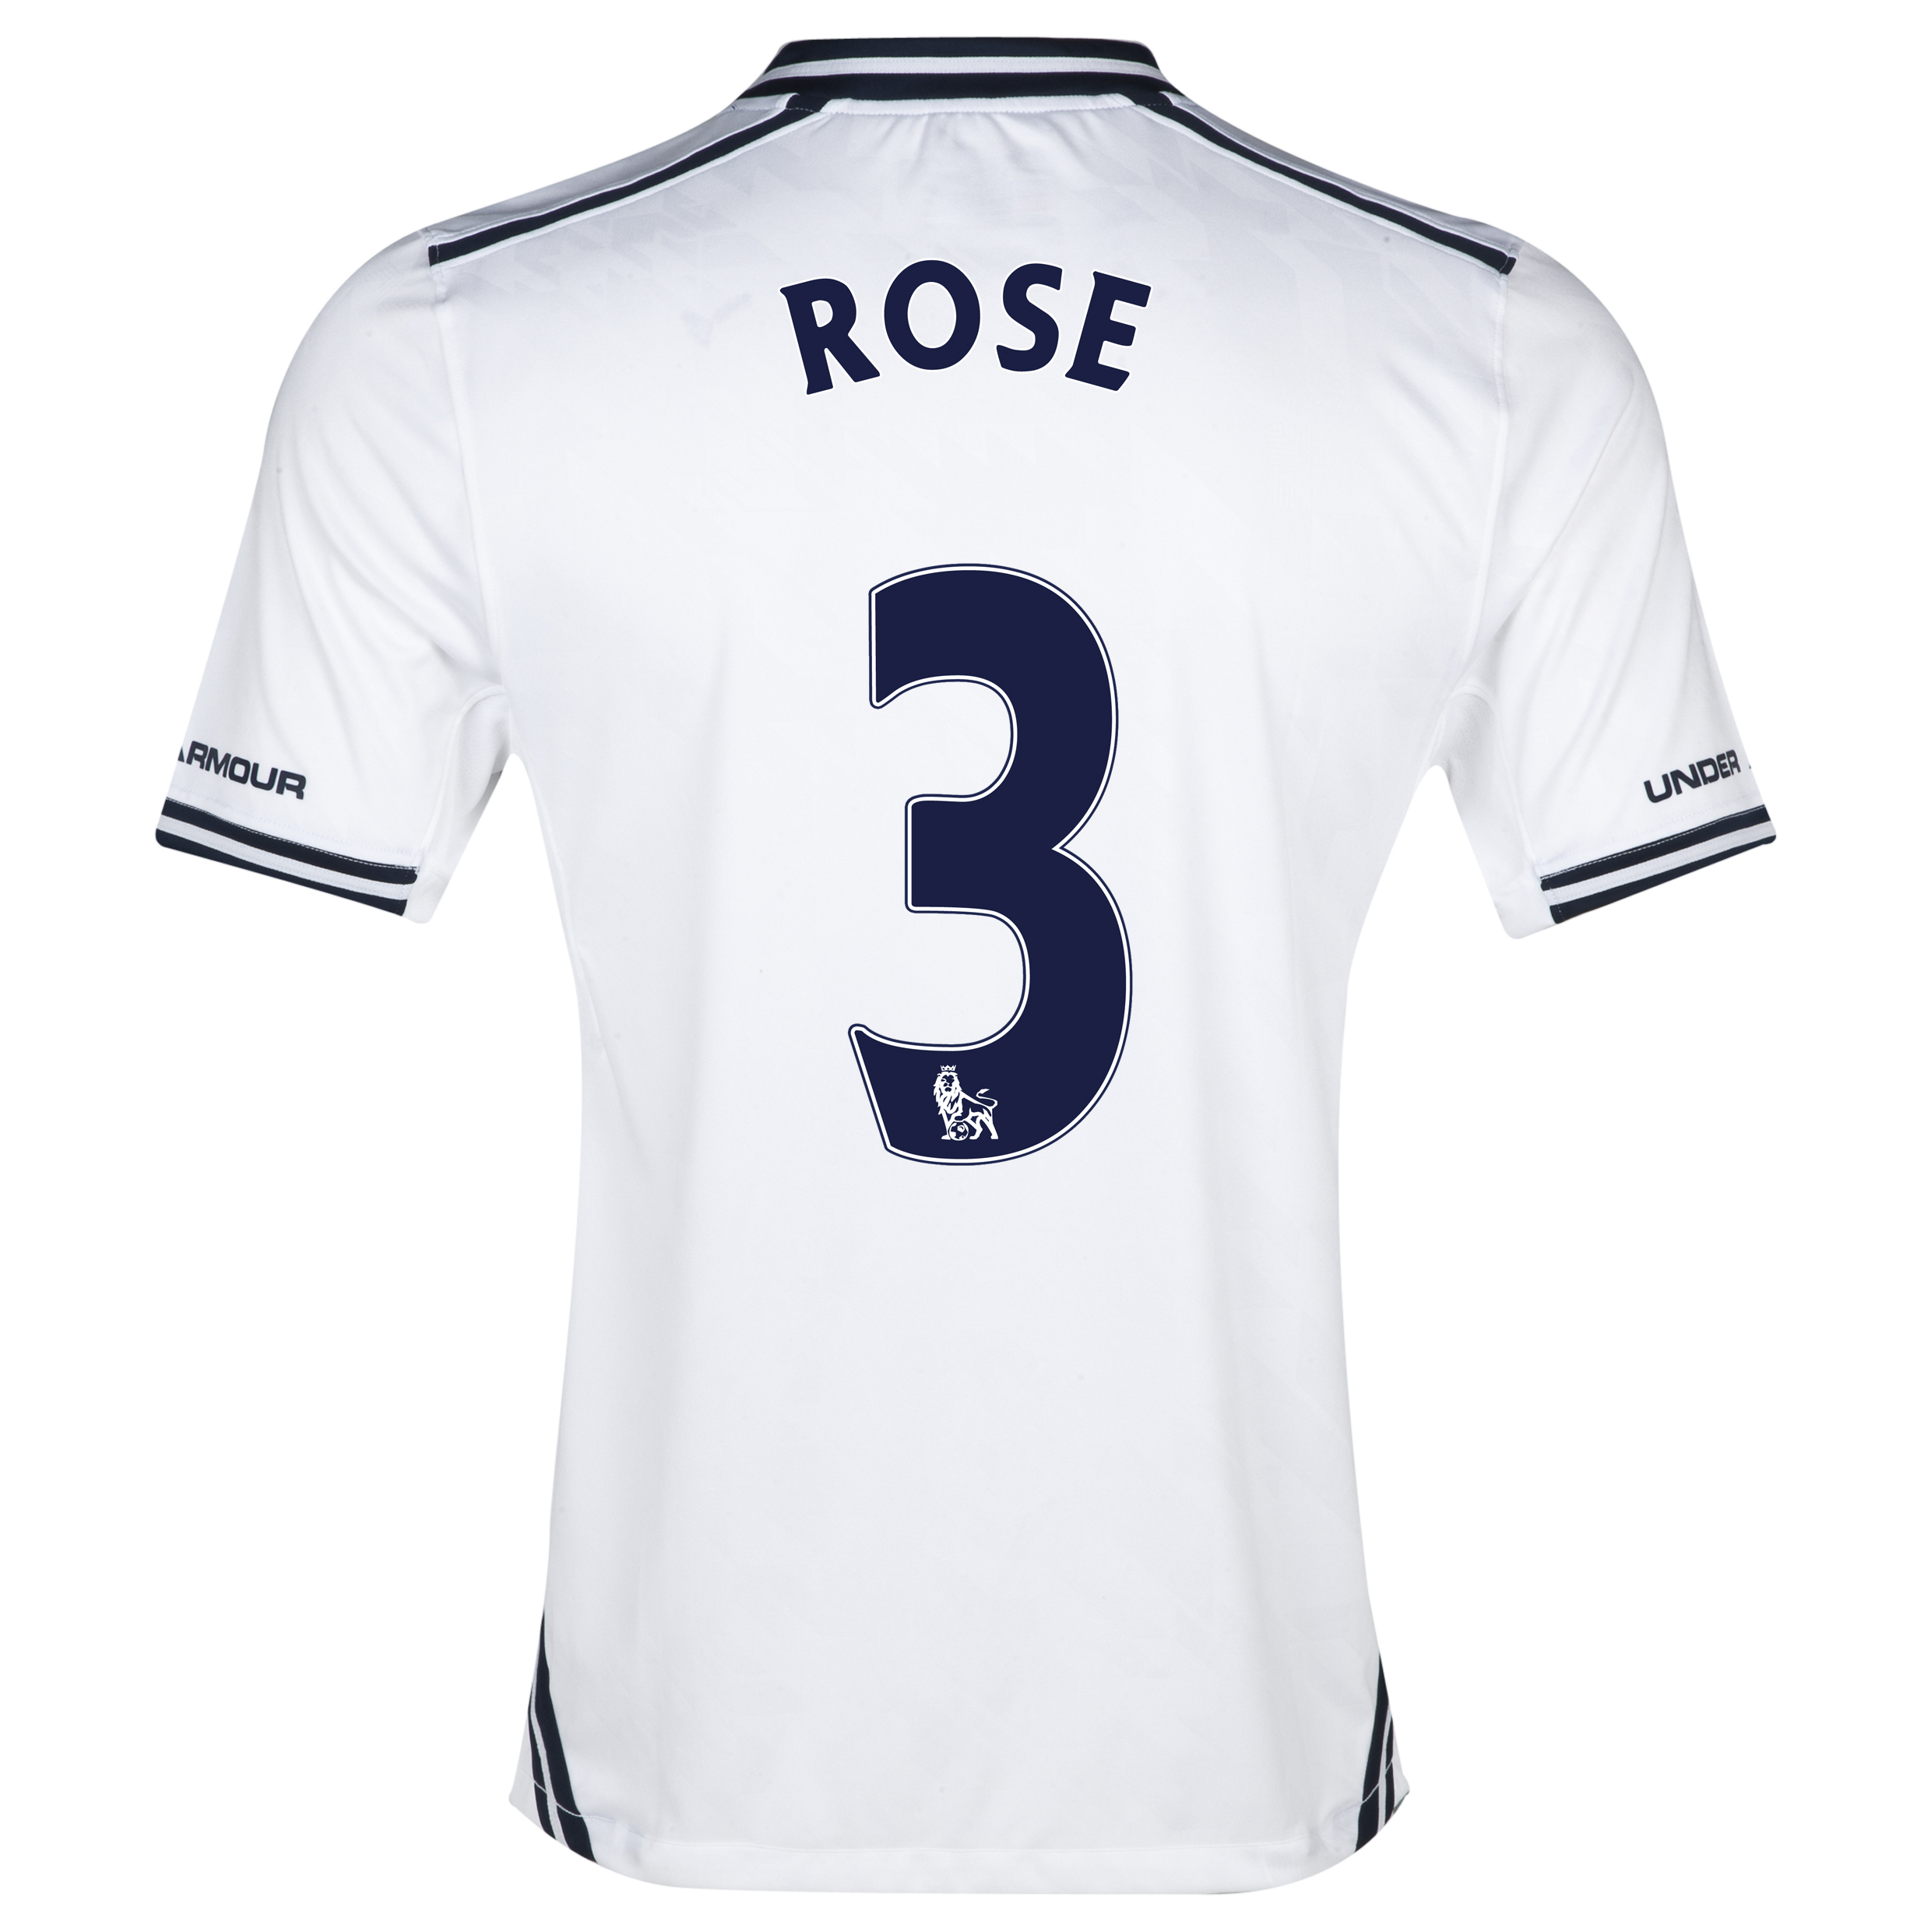 Tottenham Hotspur Home Shirt 2013/14 with Rose 3 printing